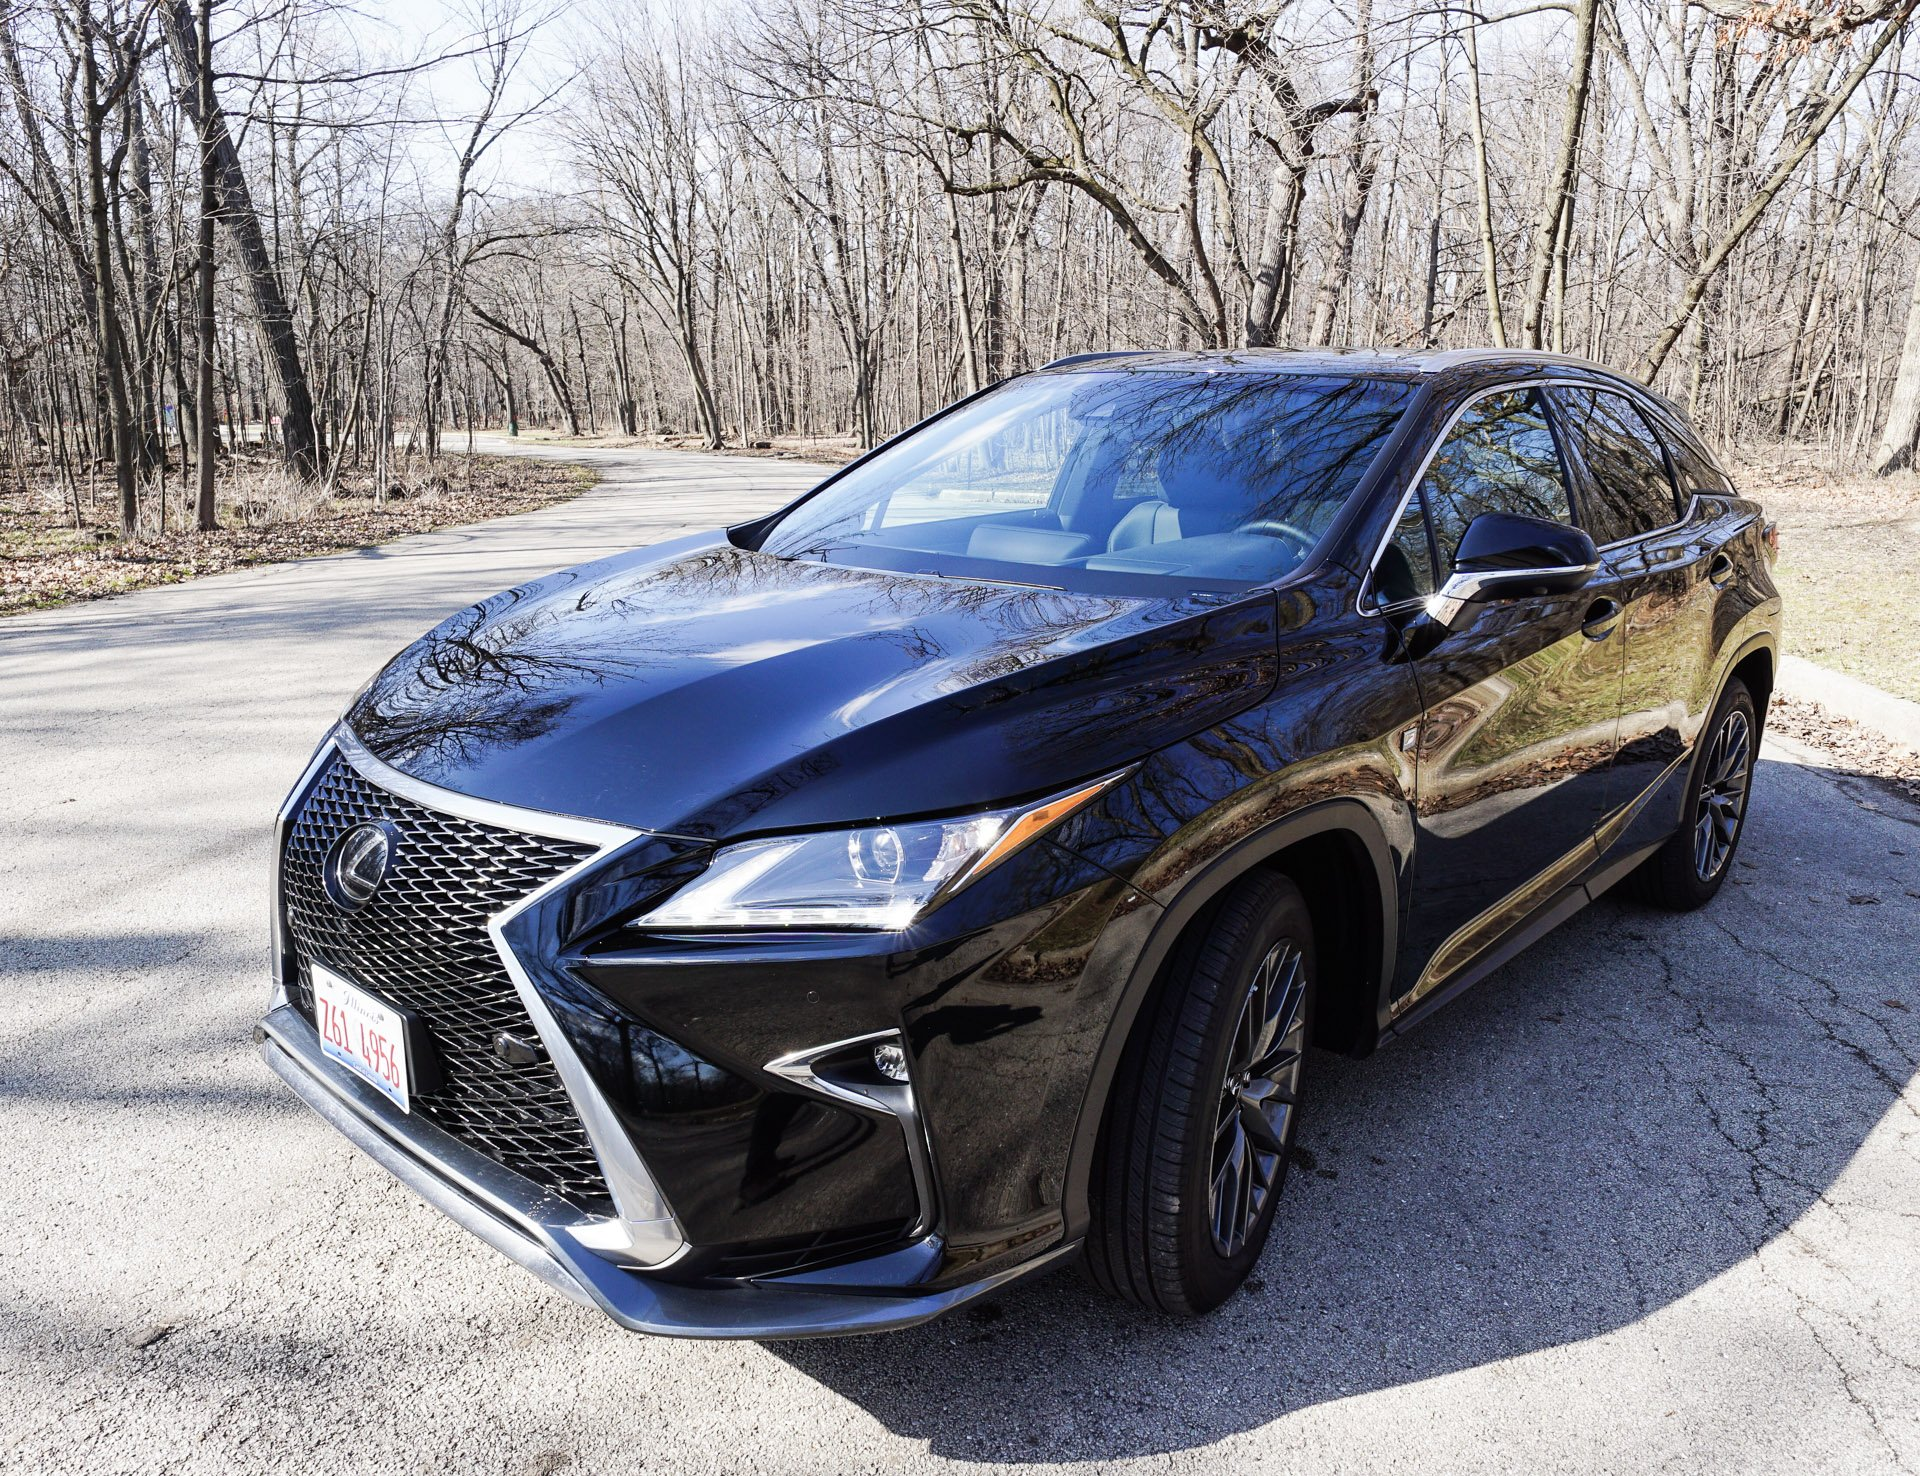 rx sport f lexus handout test driving review road suv reviews